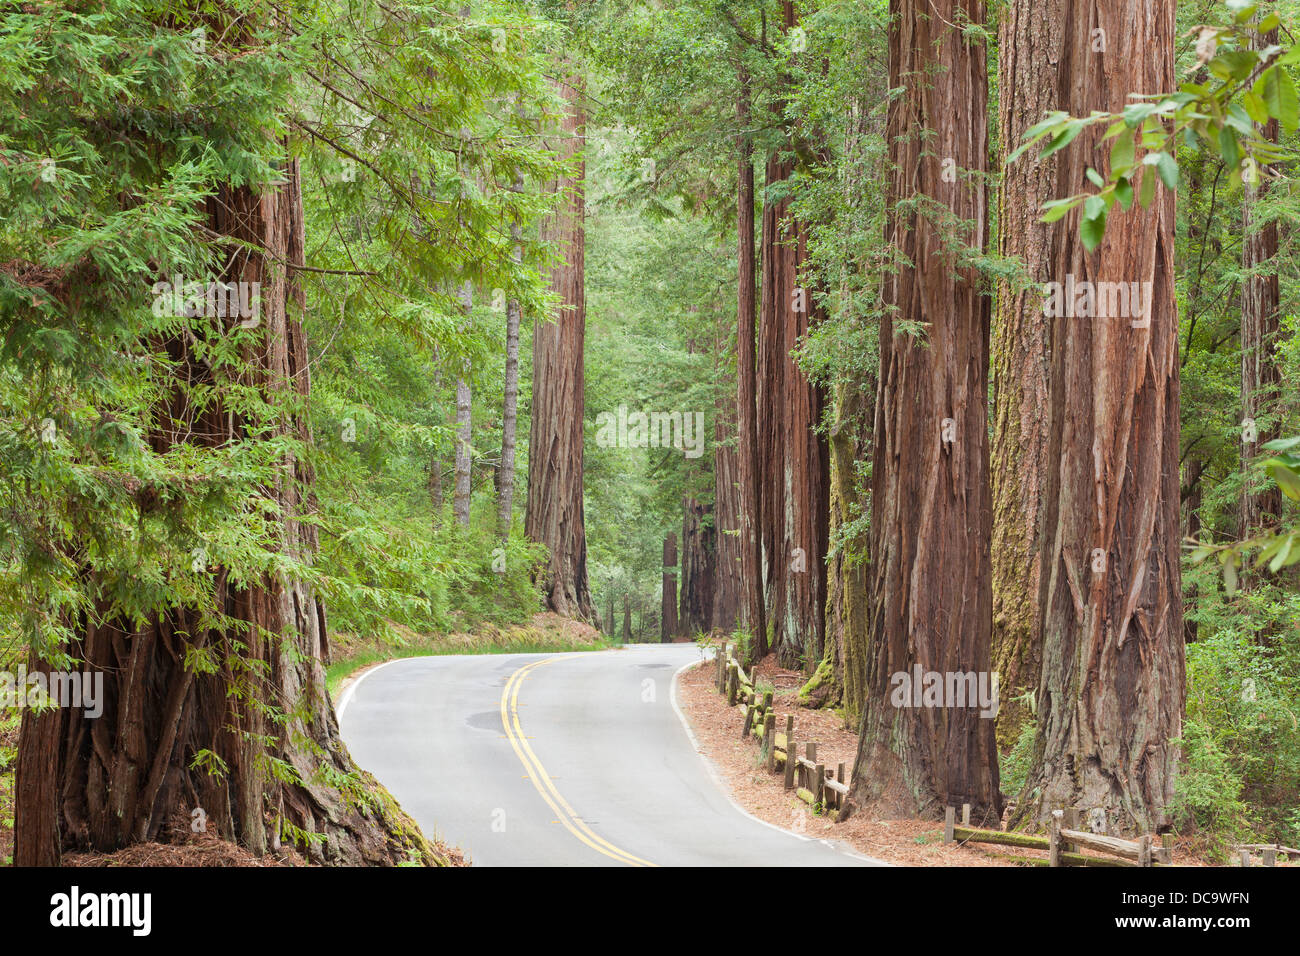 USA, California. View of road through redwoods in Big Basin Redwoods State Park. Stock Photo